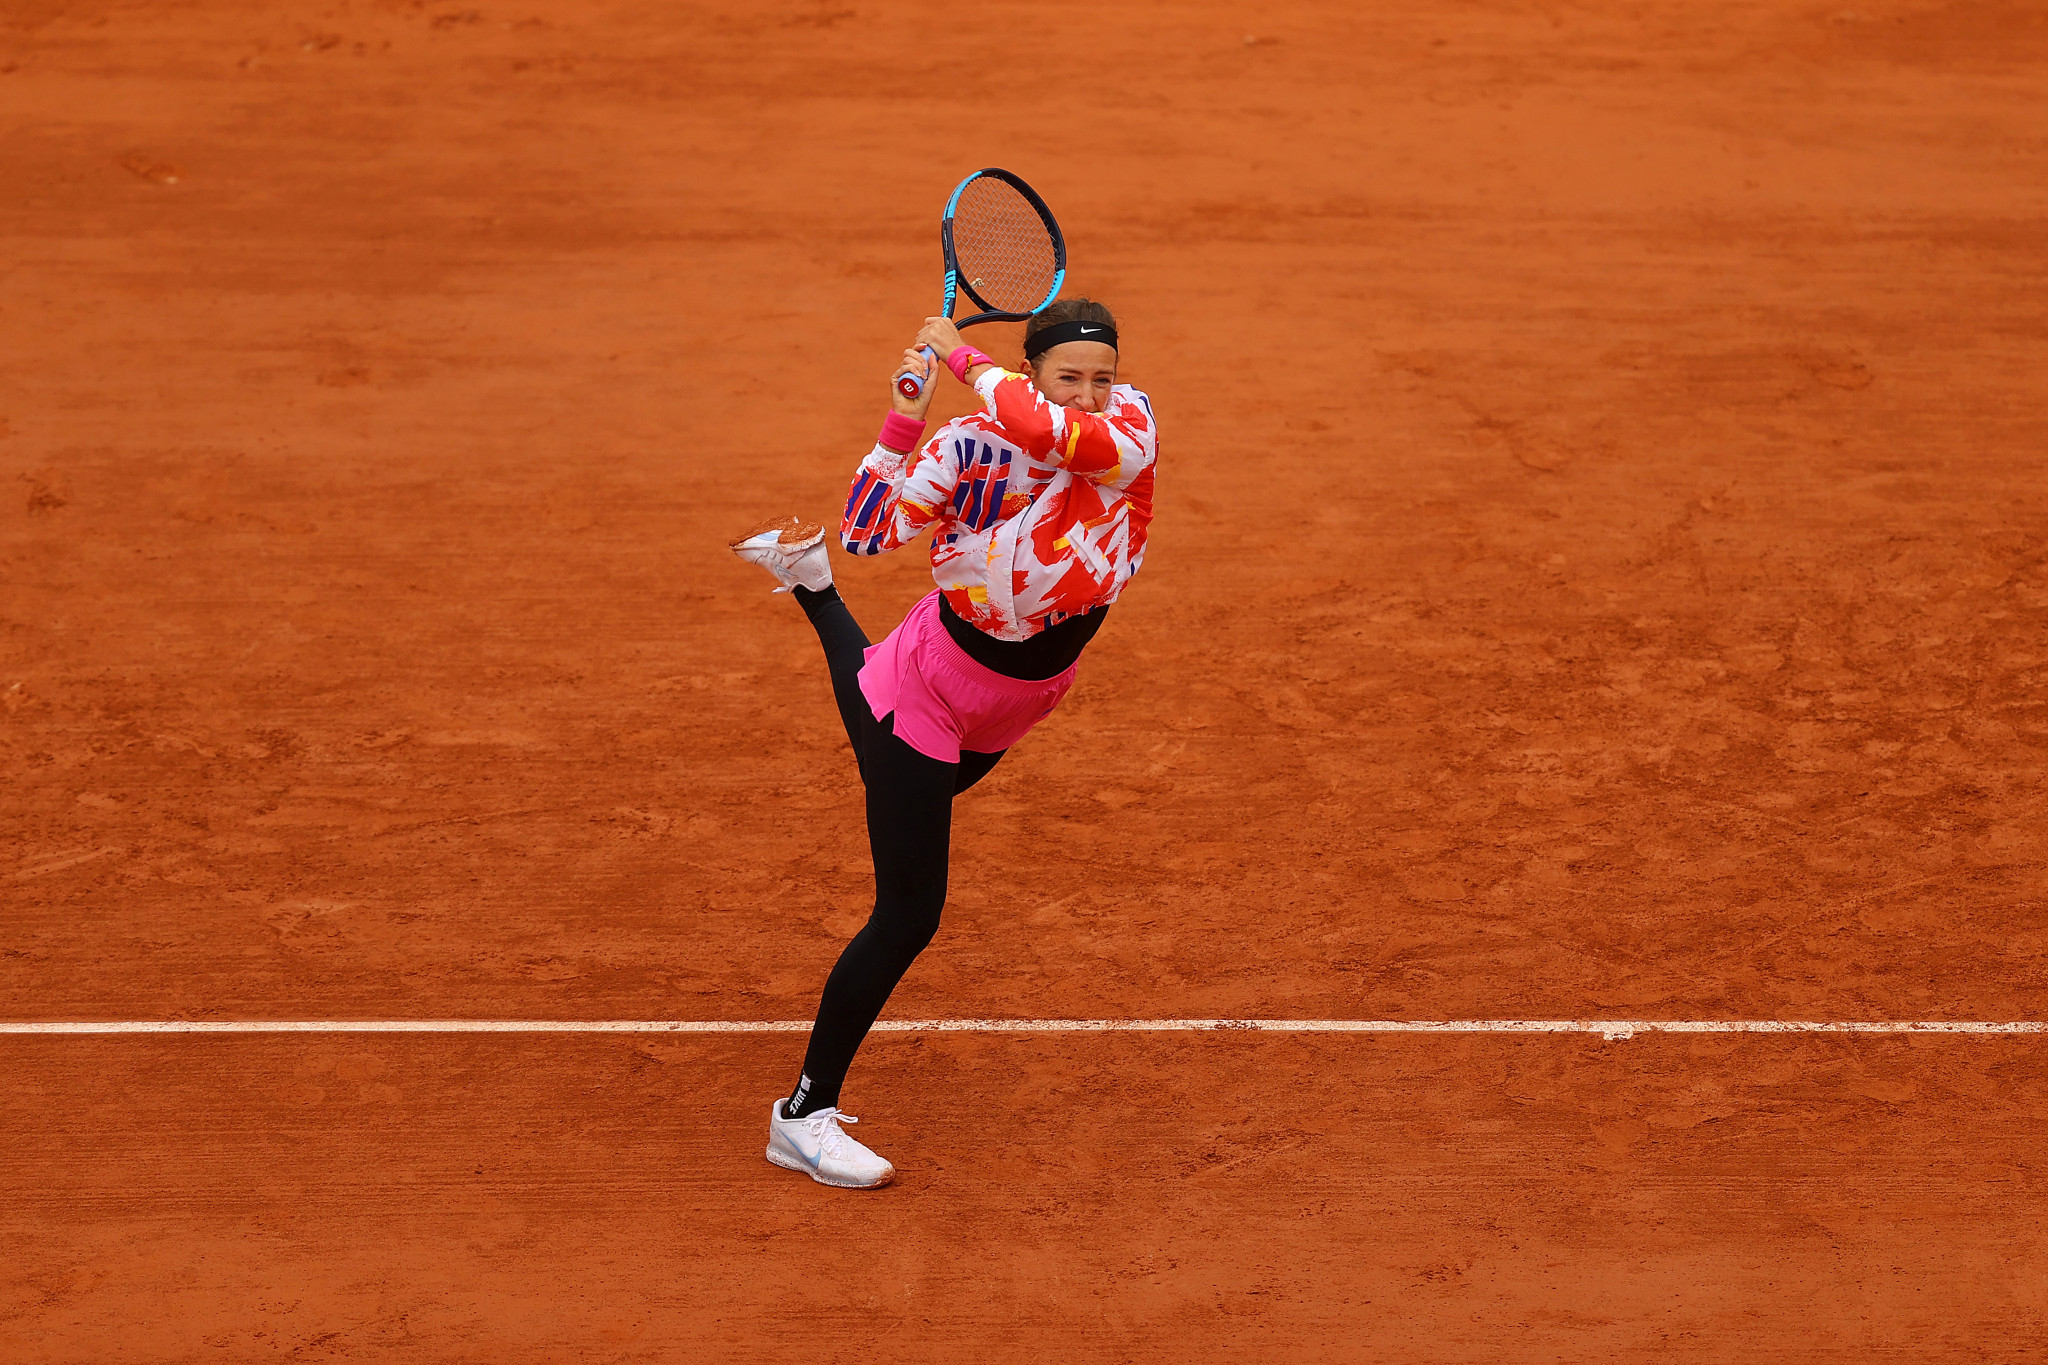 Victoria Azarenka, who was wrapped up on a chilly day in Paris, is through to round two ©Getty Images